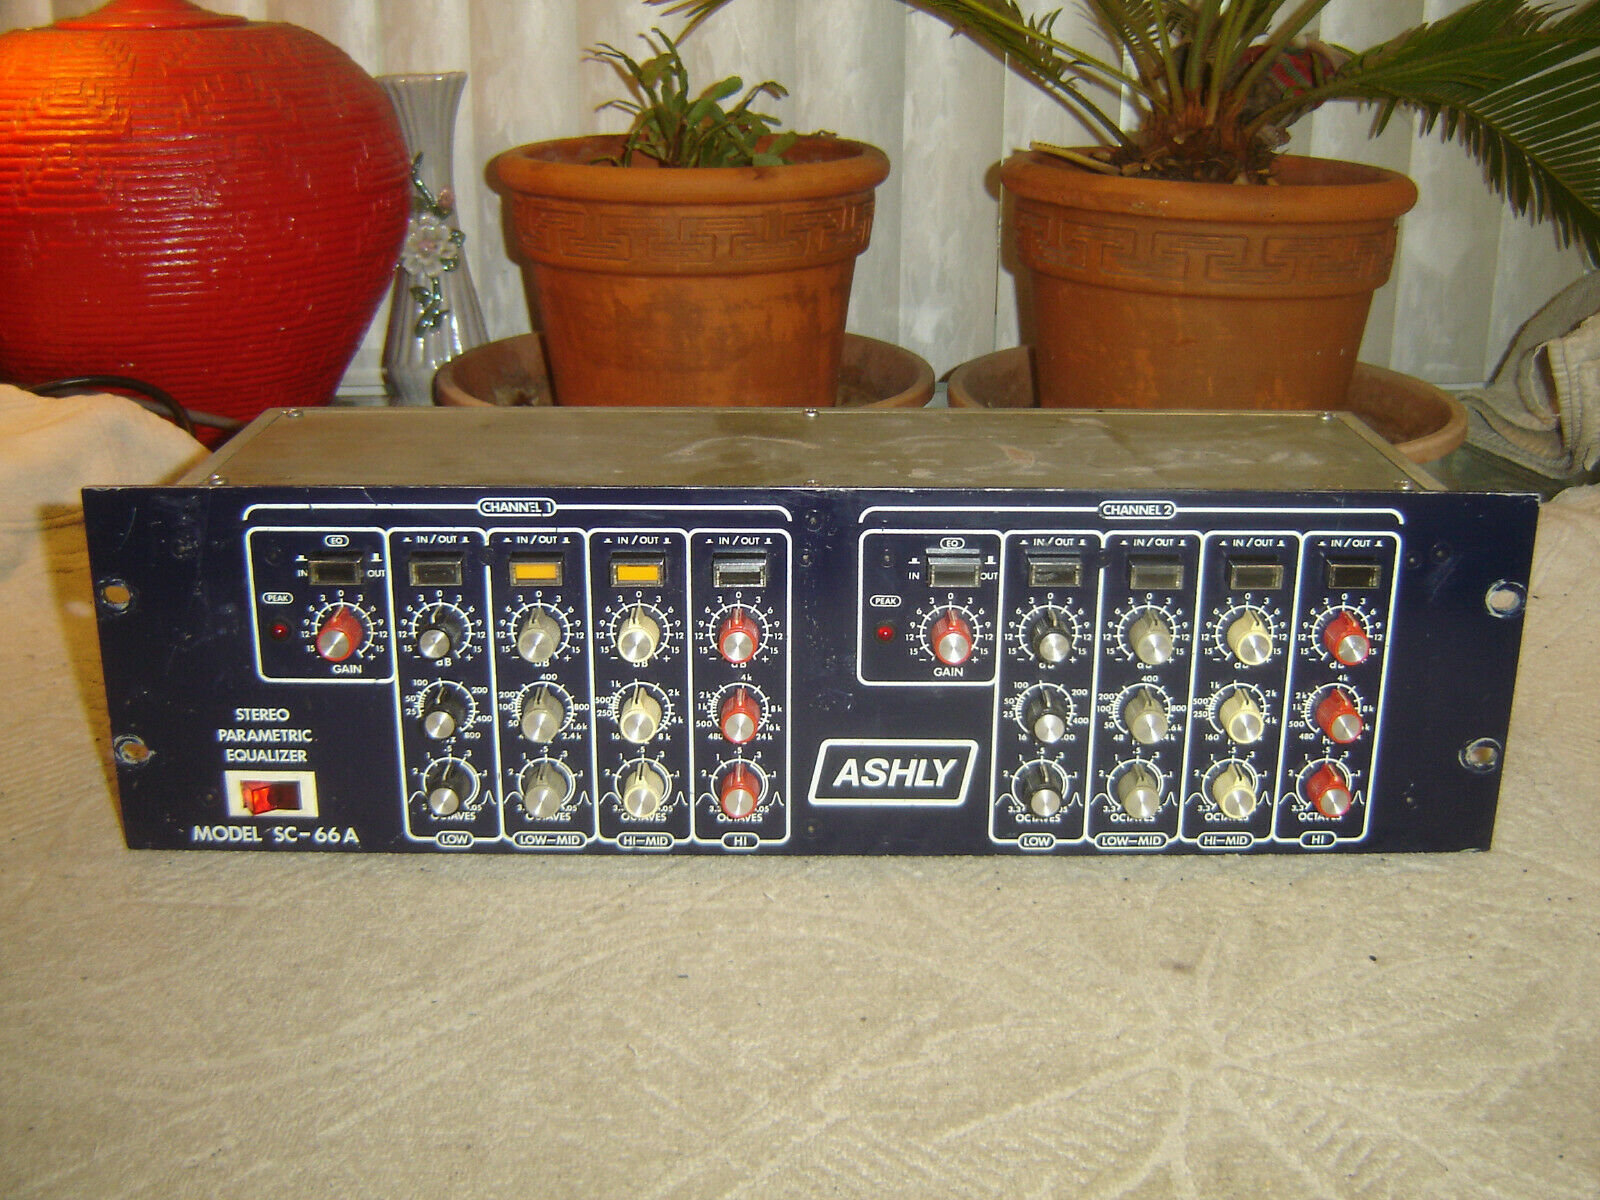 Ashly SC-66A, Blauface Stereo Parametric Equalizer, Eq, Vintage Rack, As Is